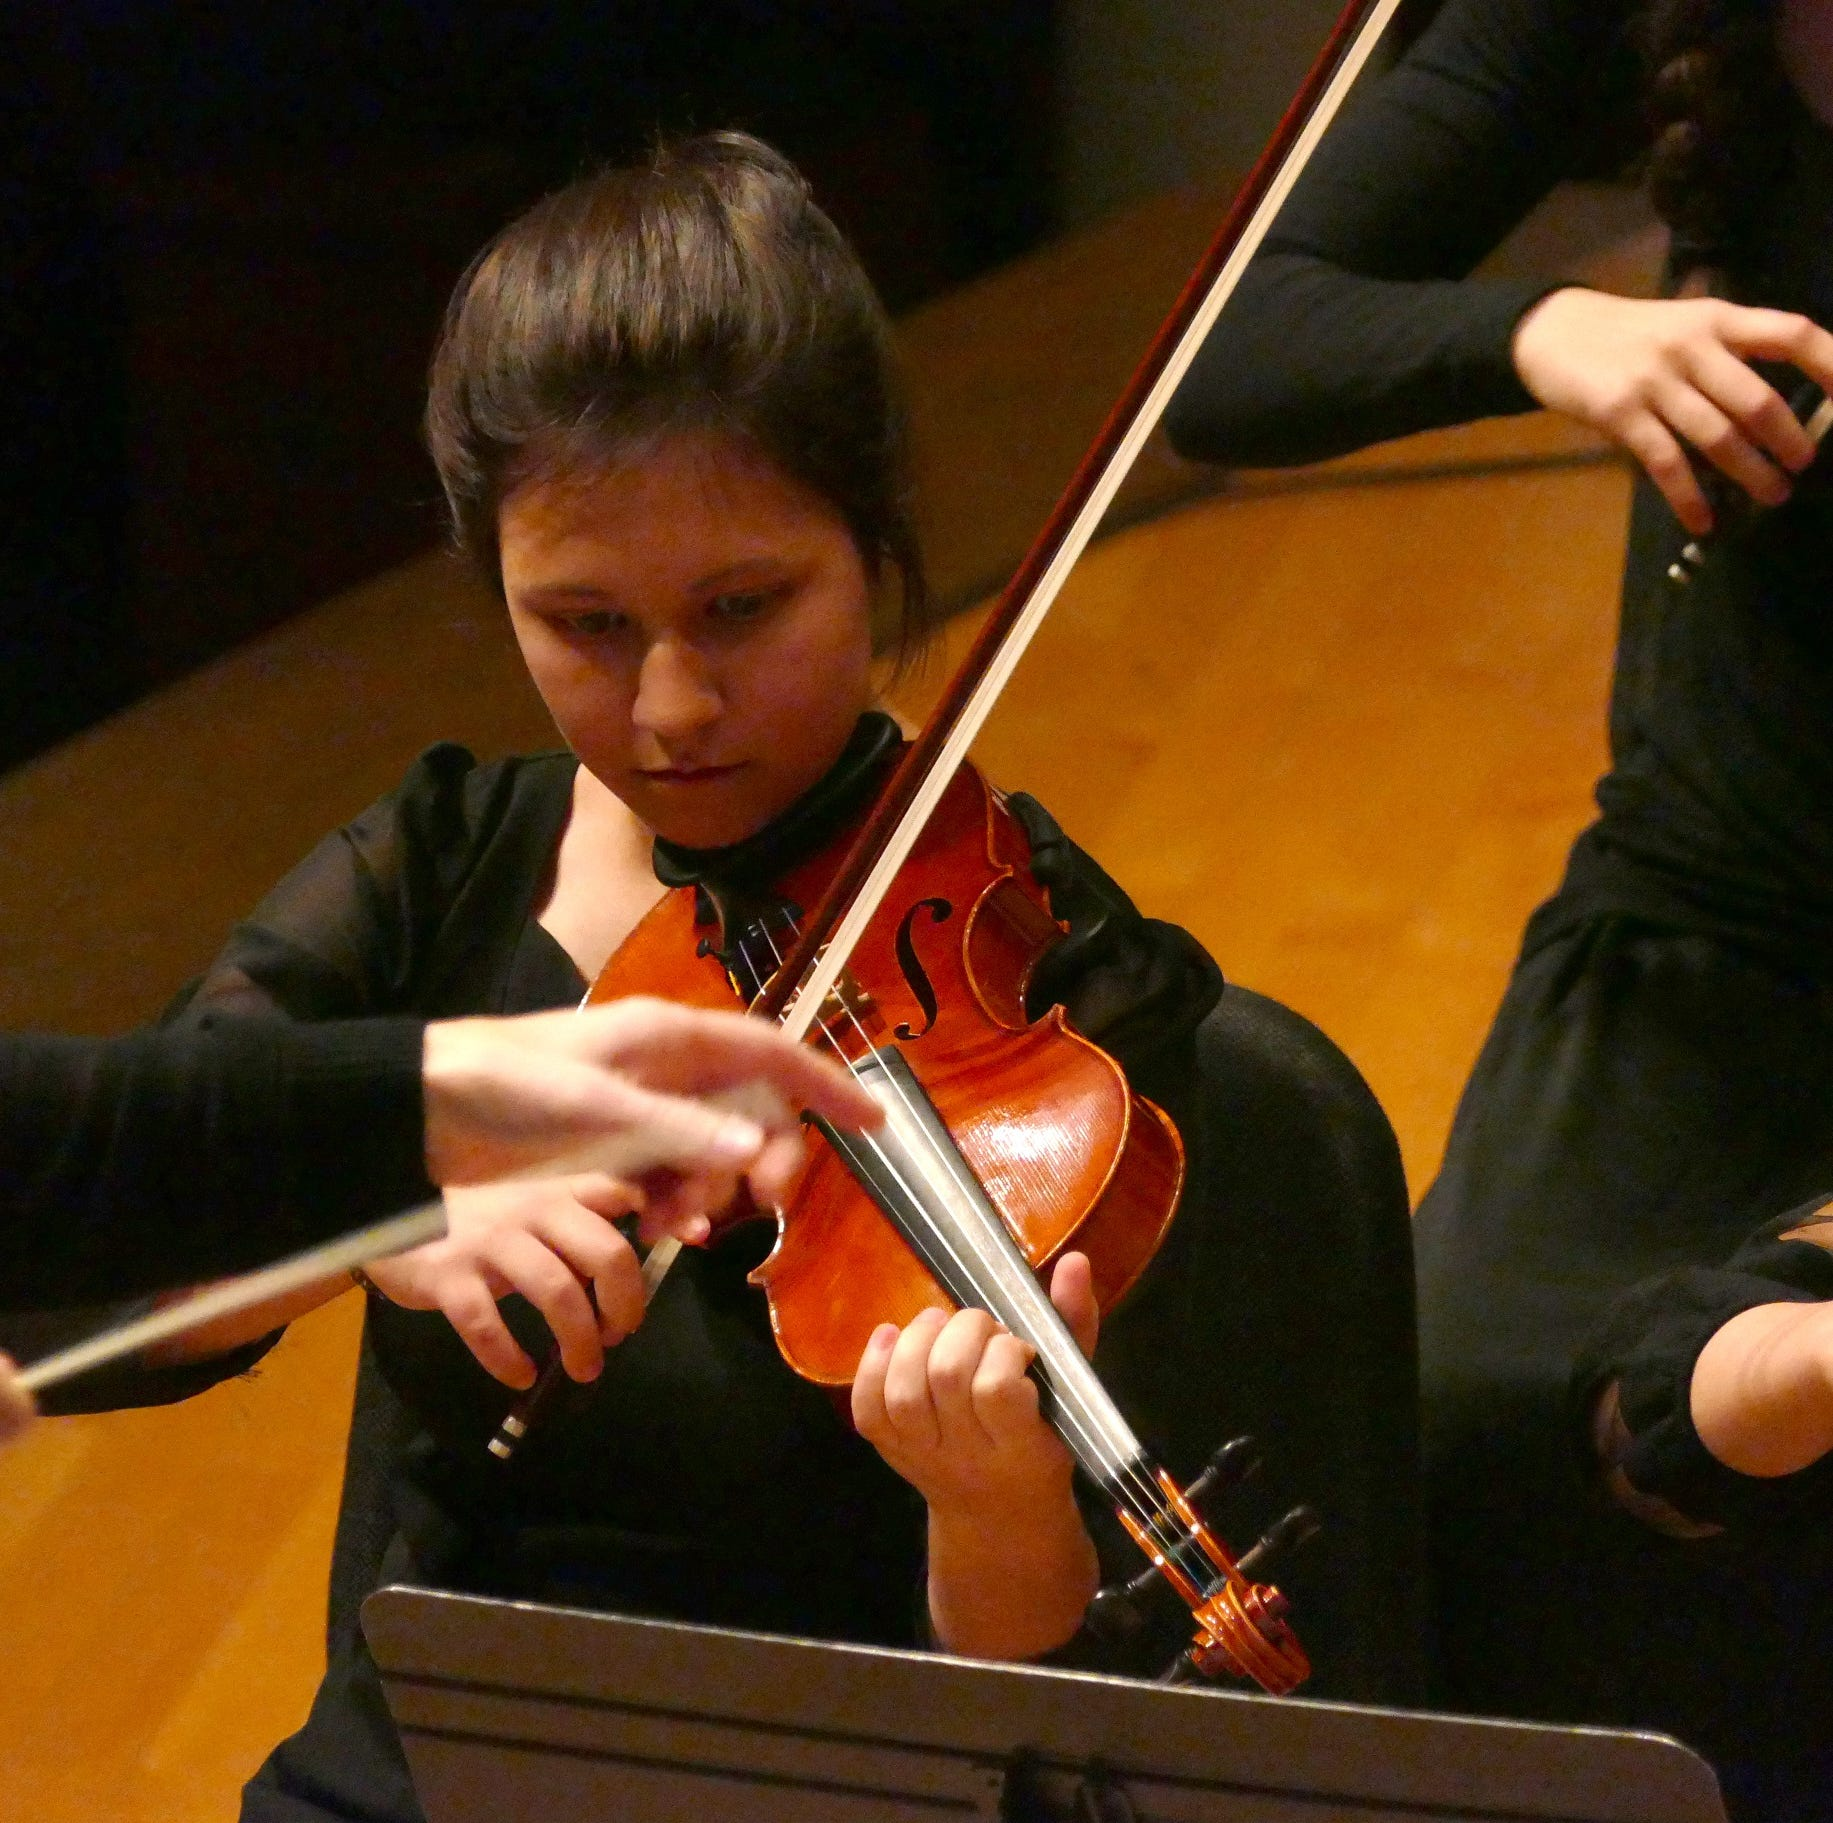 Voices of the Arts: Performing in youth orchestra is rewarding experience